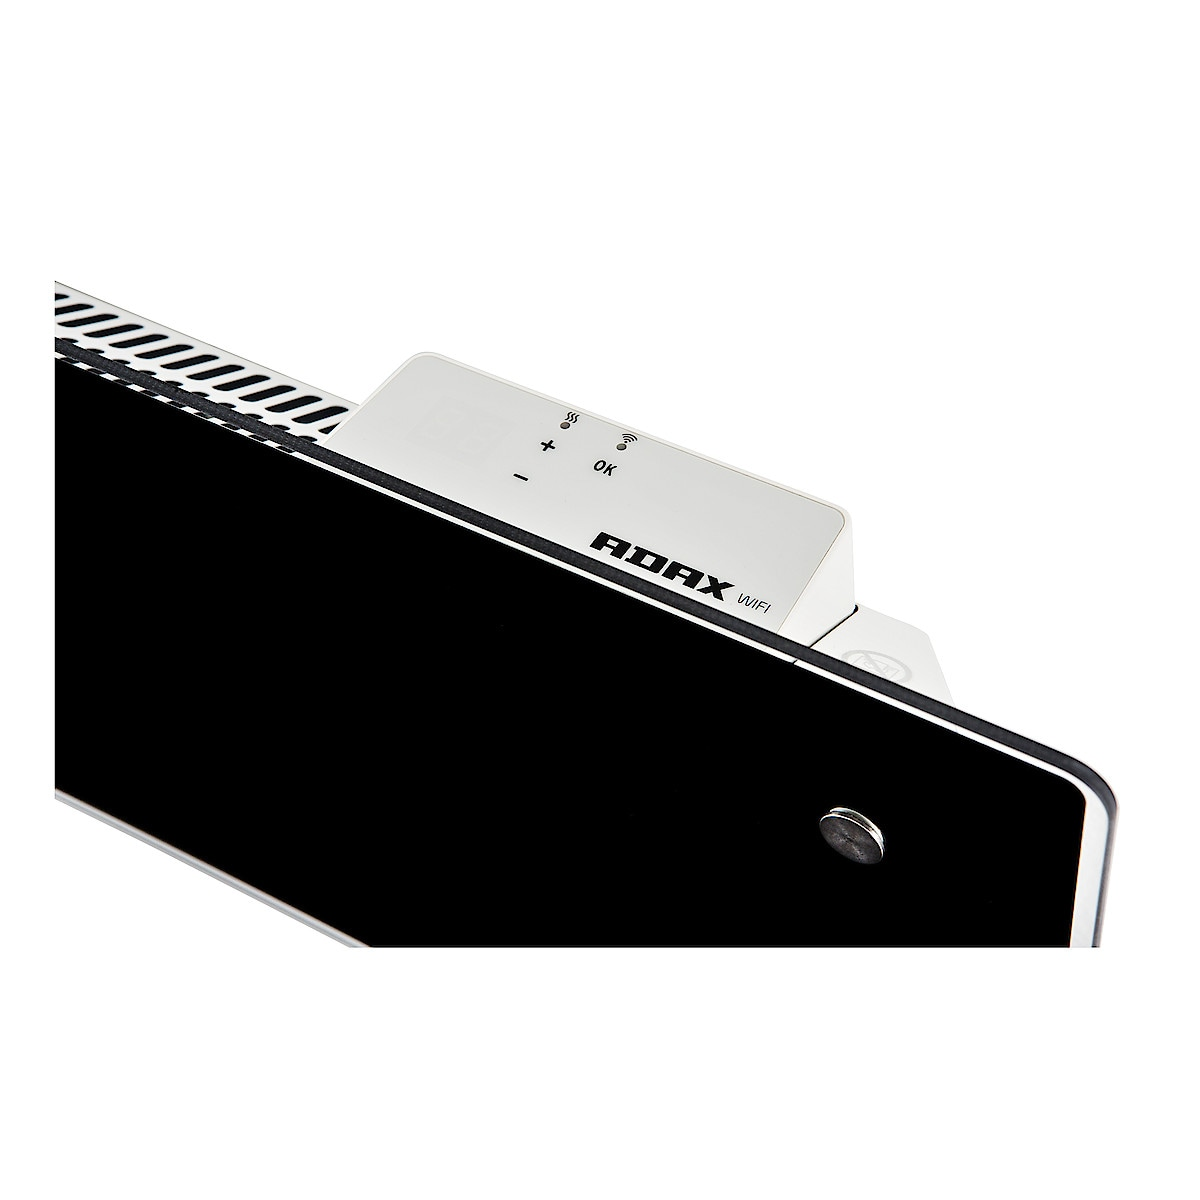 Element med WiFi 1000 W 230 V Adax Clea H 10